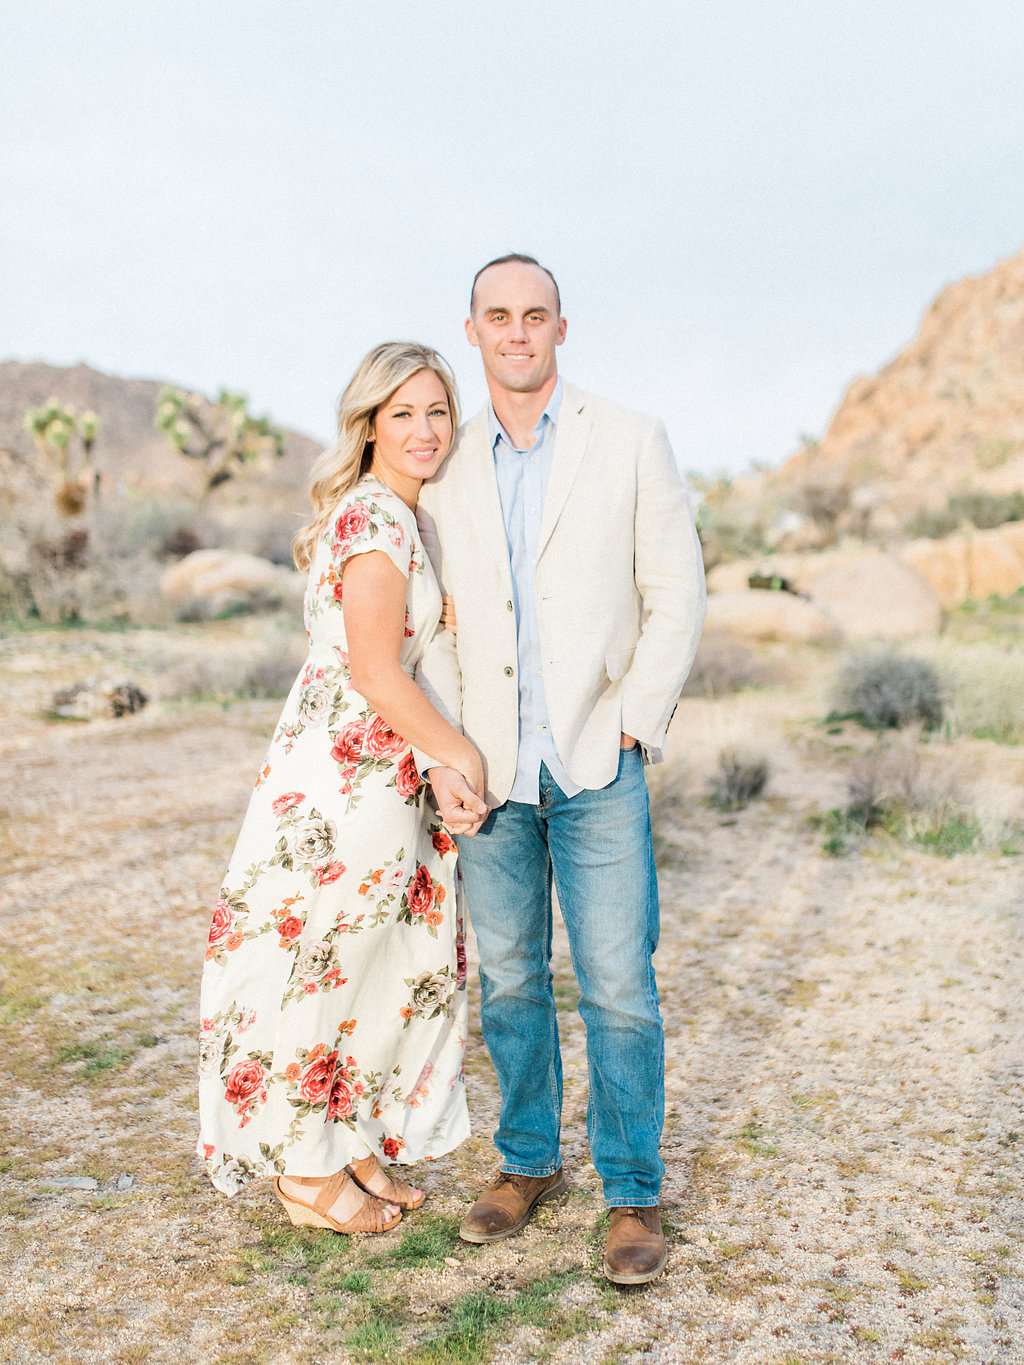 Joshua Tree Engagement Session | What to Wear for Pictures | Southern California Wedding Photographer | Mastin Labs Fuji Film | Fine Art Photographer | Desert Shoot | Hand in Hand Posing.jpg